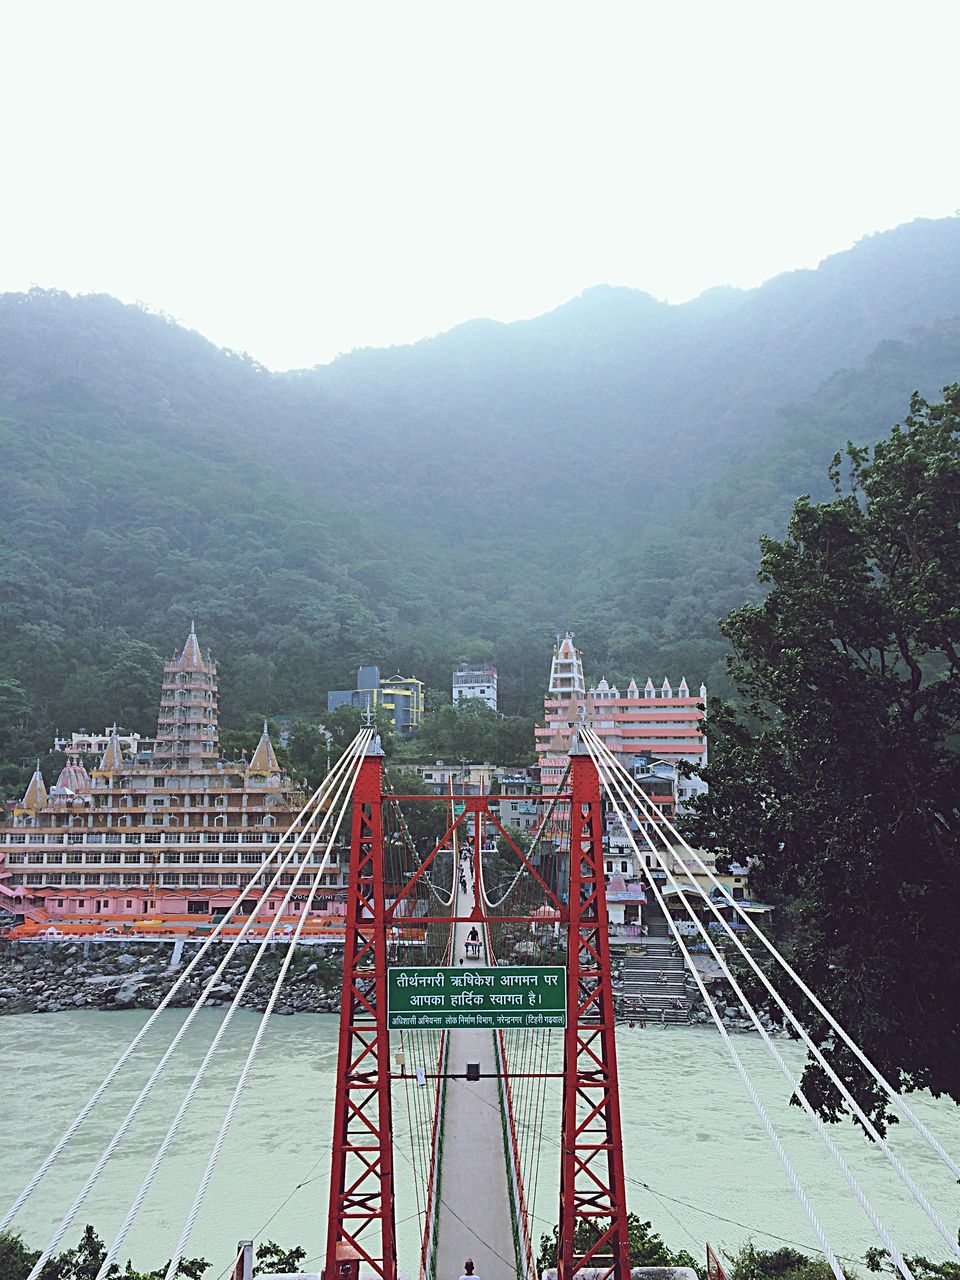 mountain, architecture, built structure, connection, day, bridge - man made structure, transportation, outdoors, tree, high angle view, clear sky, nature, mountain range, suspension bridge, building exterior, river, no people, sky, travel destinations, beauty in nature, water